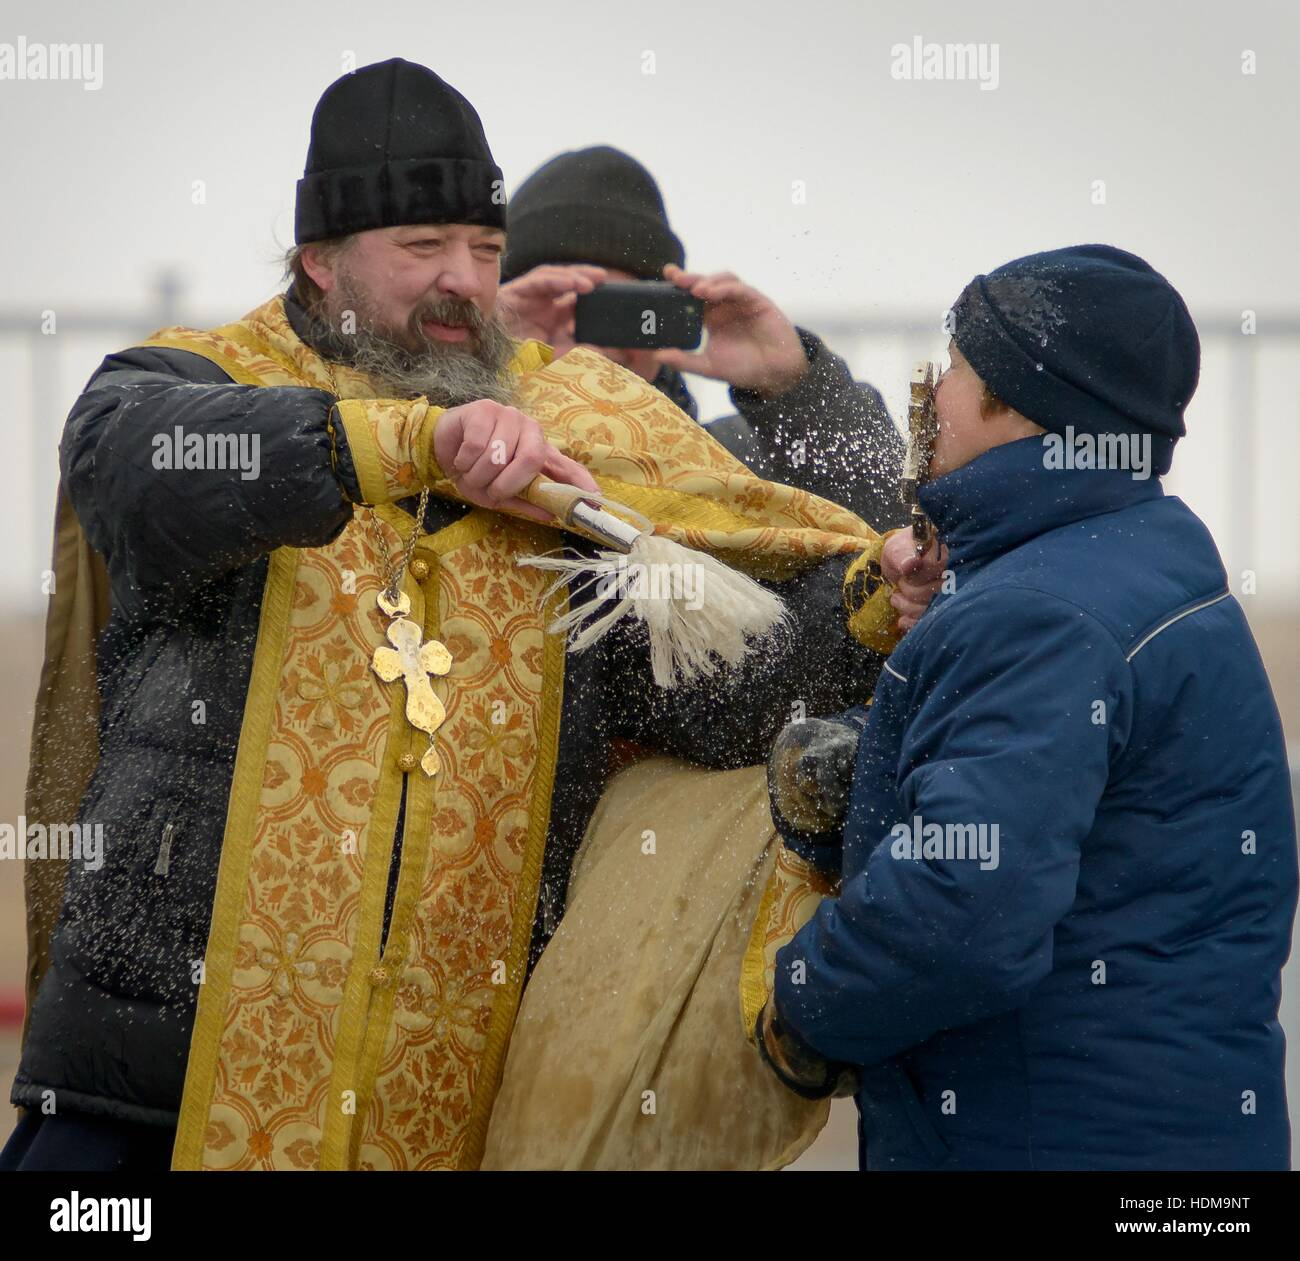 A Russian Orthodox Priest blesses a NASA International Space Station Expedition 50 mission crew member after blessing - Stock Image